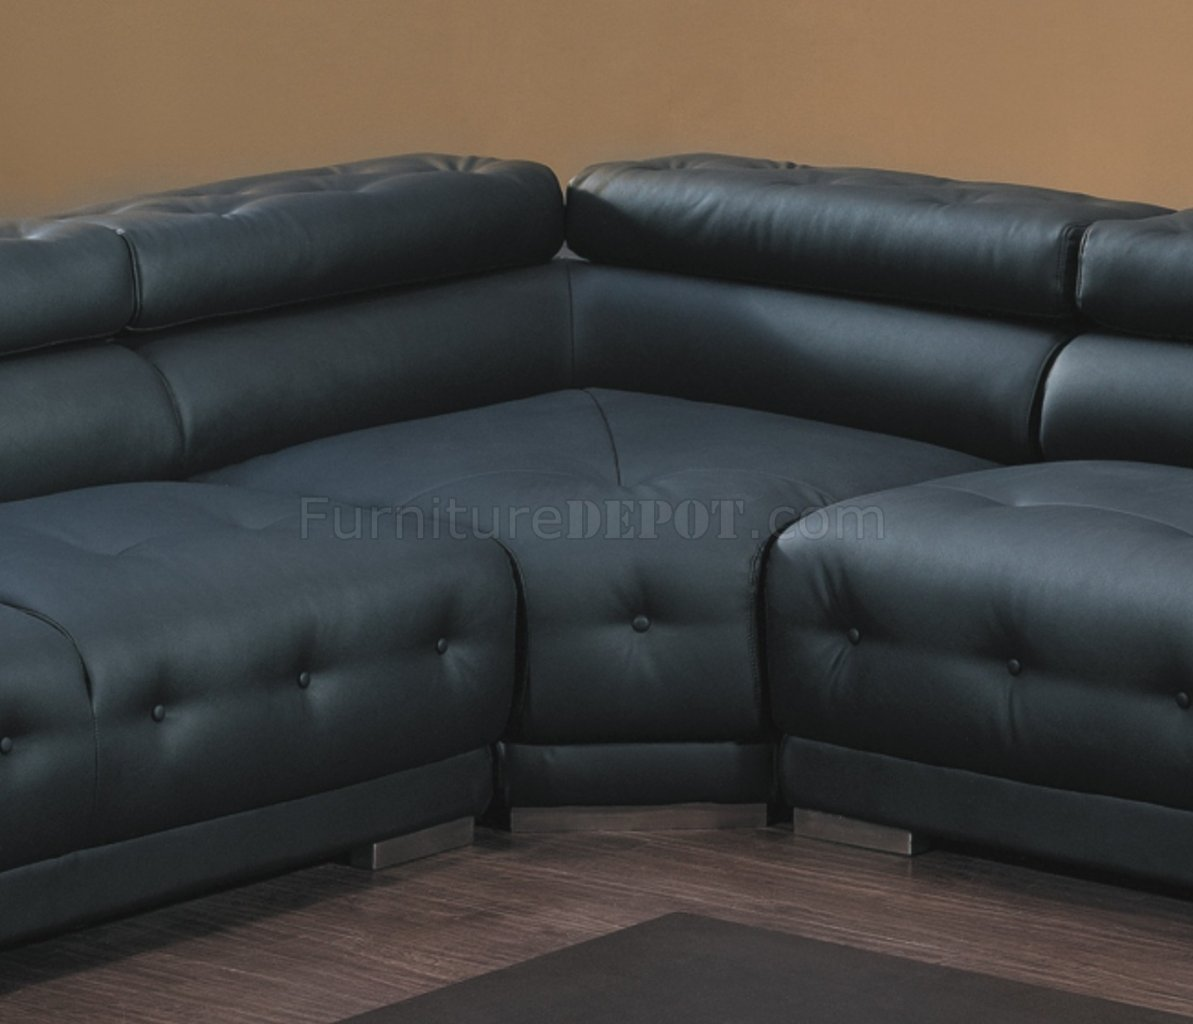 t57b ultra modern leather sectional sofa set cleaning 8097 in black by american eagle